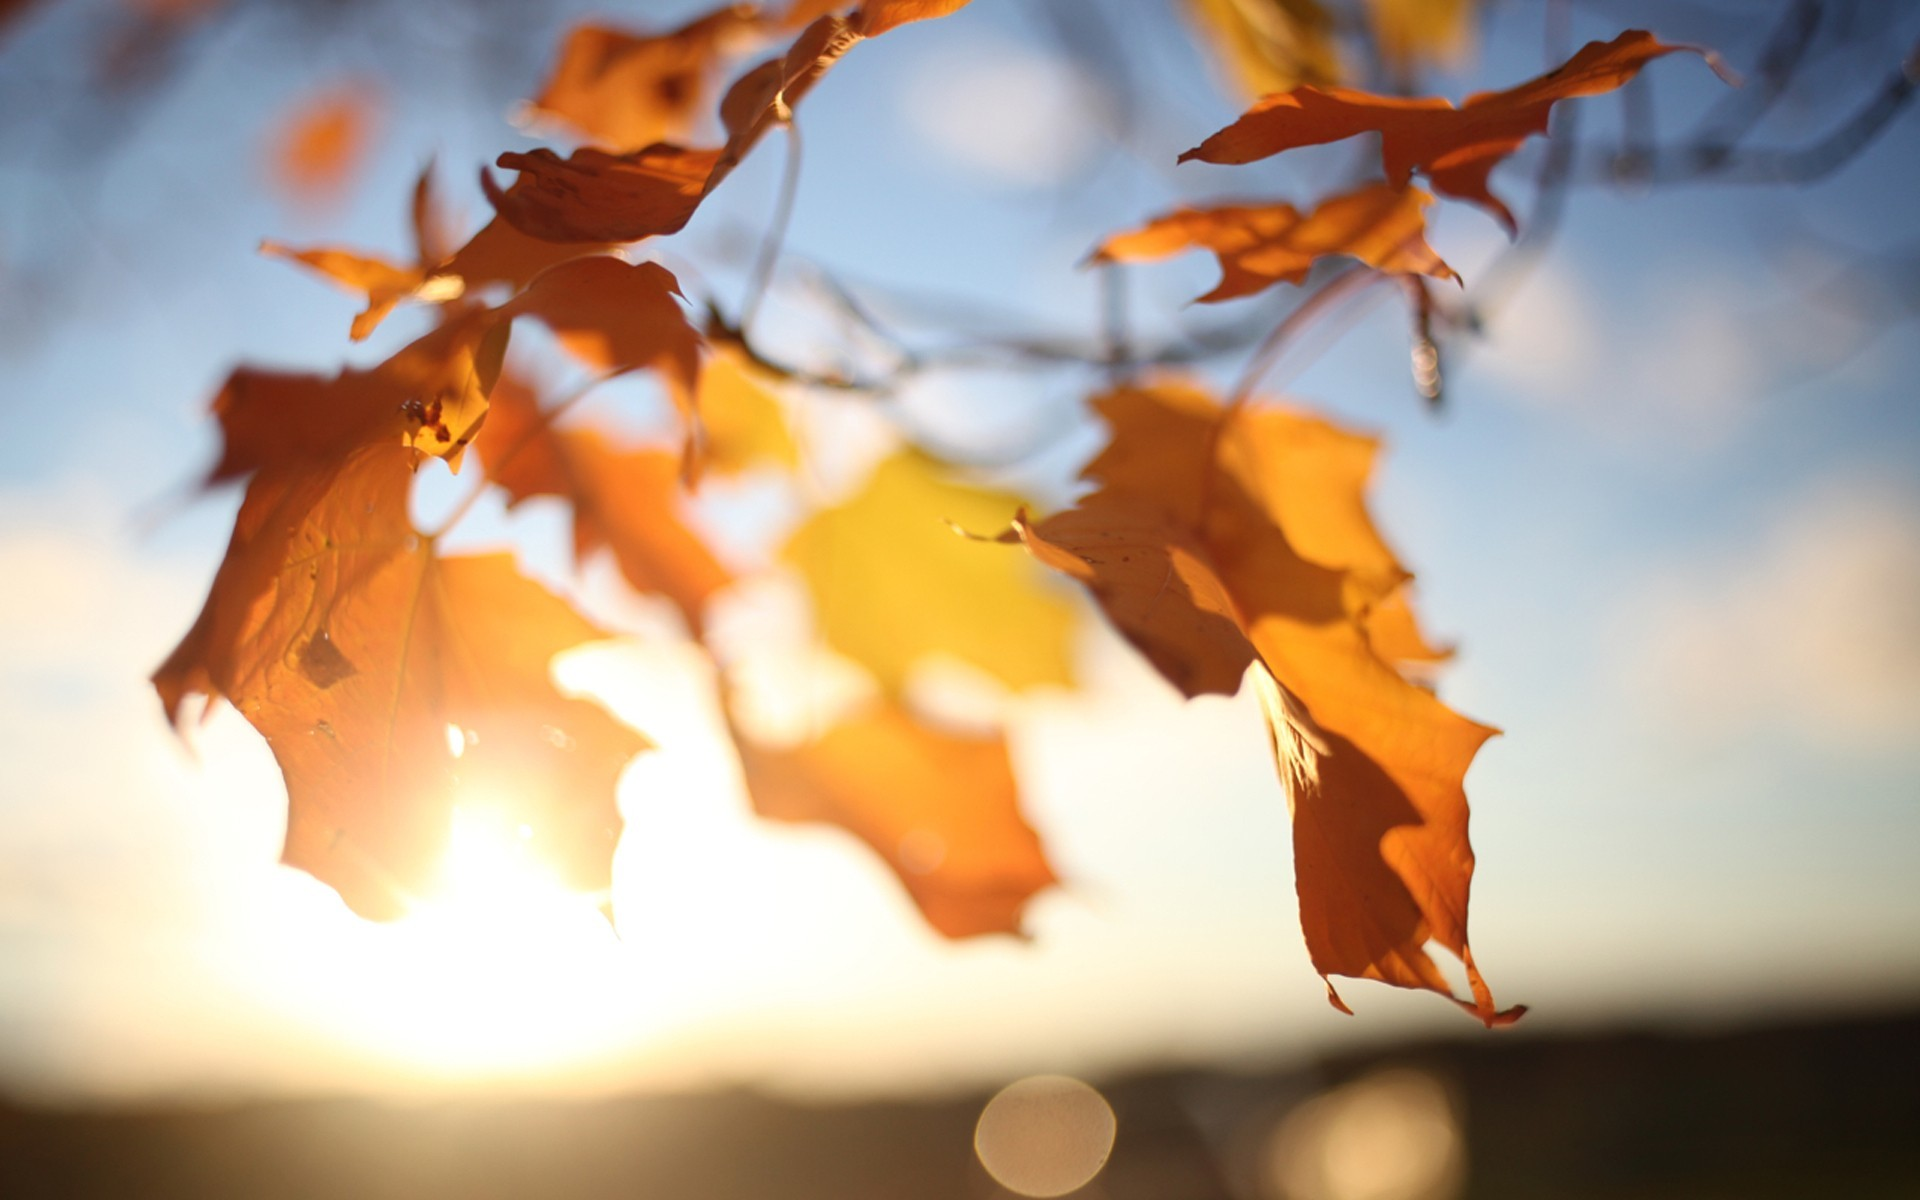 macro leaves nature sun autumn sunlight HD Wallpaper